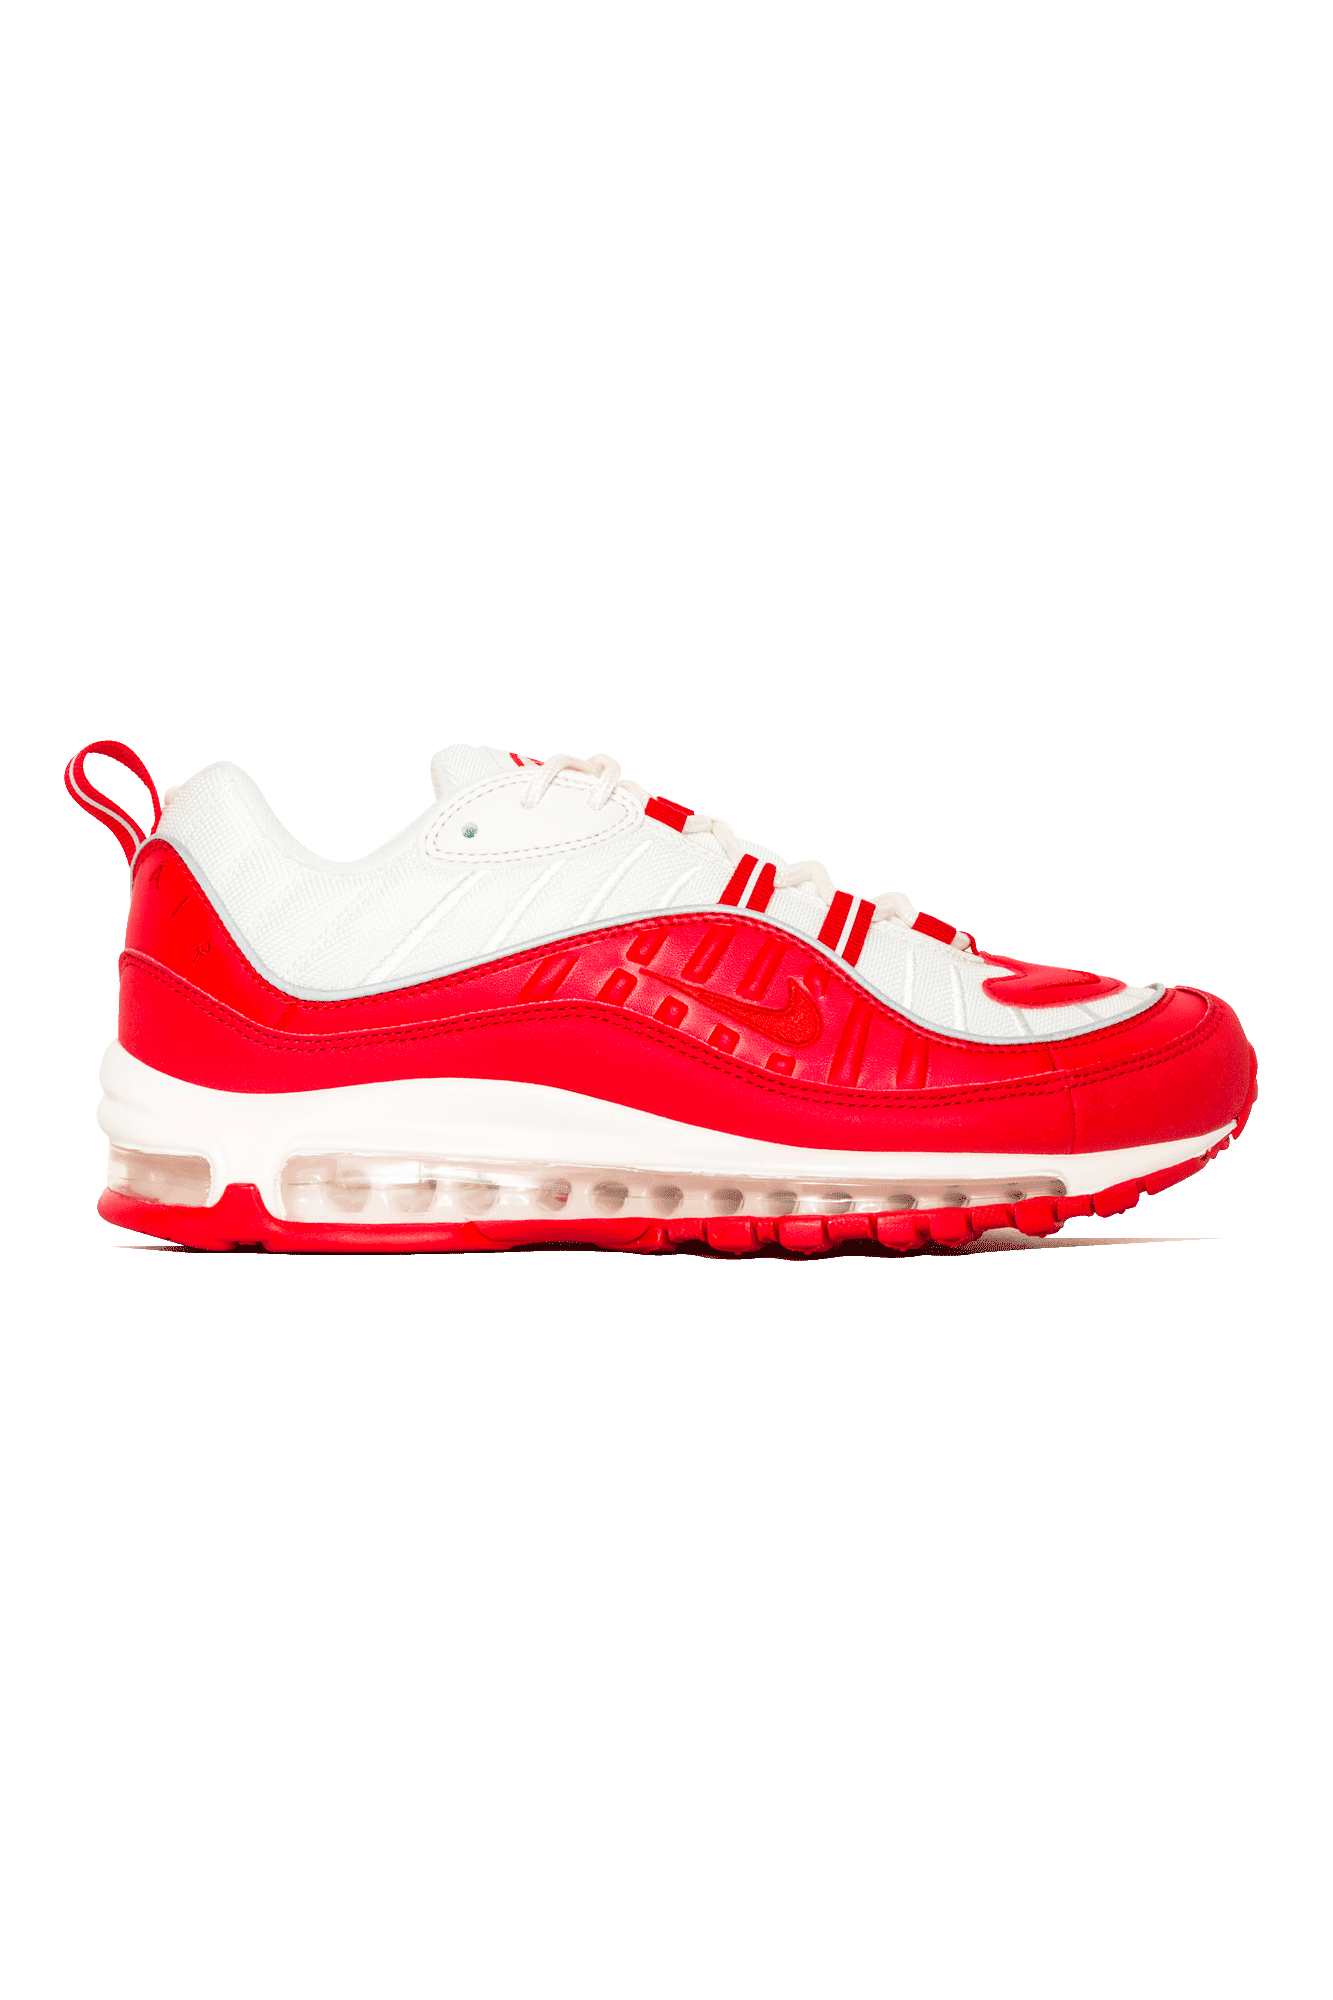 Sneakers Nike Air Max 98 Red - One Block Down